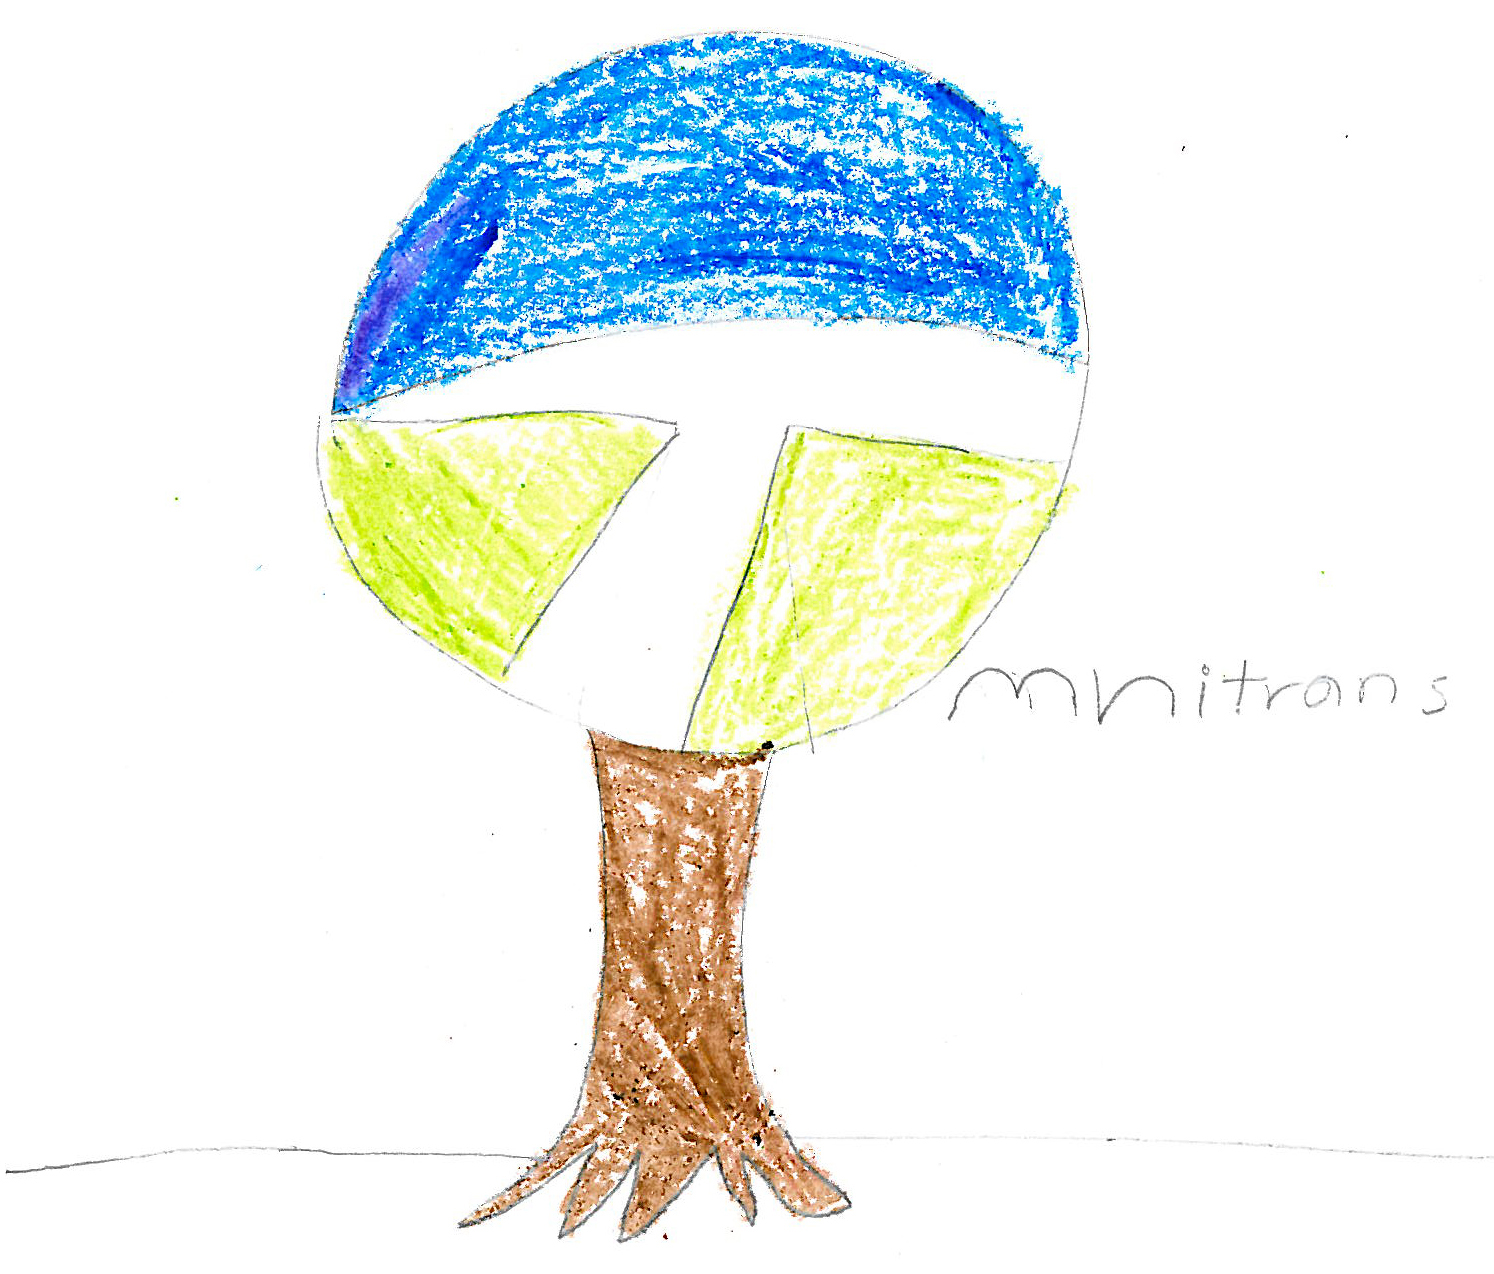 Public Transit Kids Drawings Omnitrans Public Transit News For The